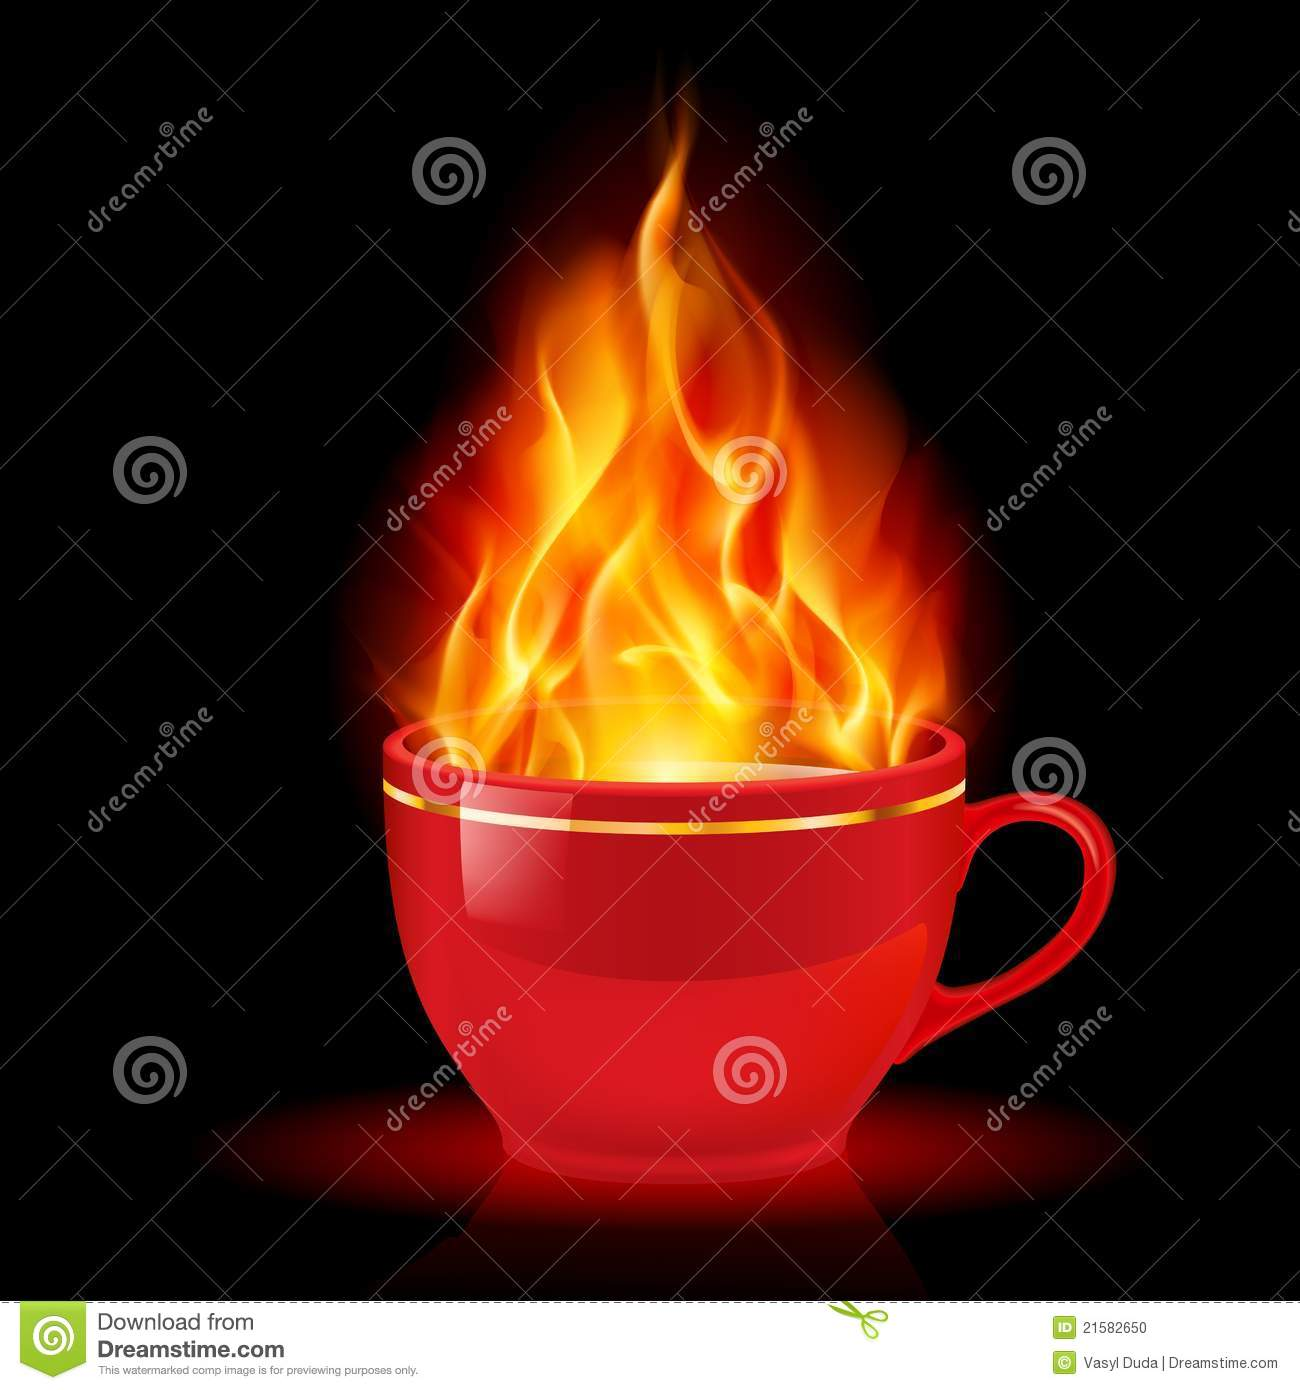 Coffee Or Tea Cup With Fire Stock Photo - Image: 21582650